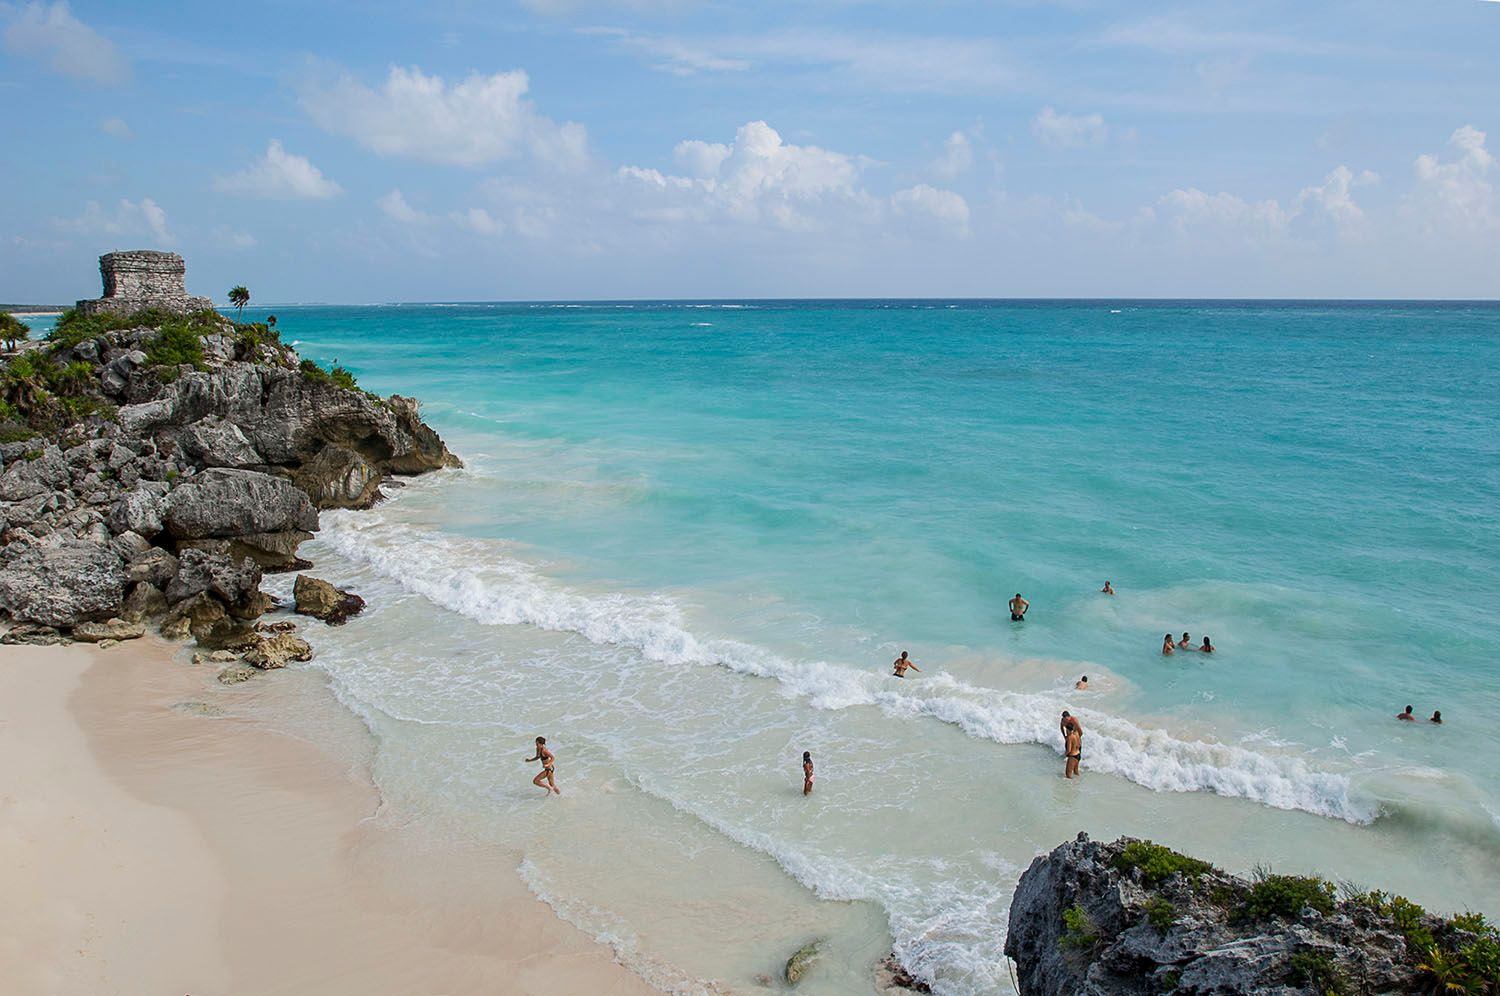 Tulum Mayan ruin with people swimming